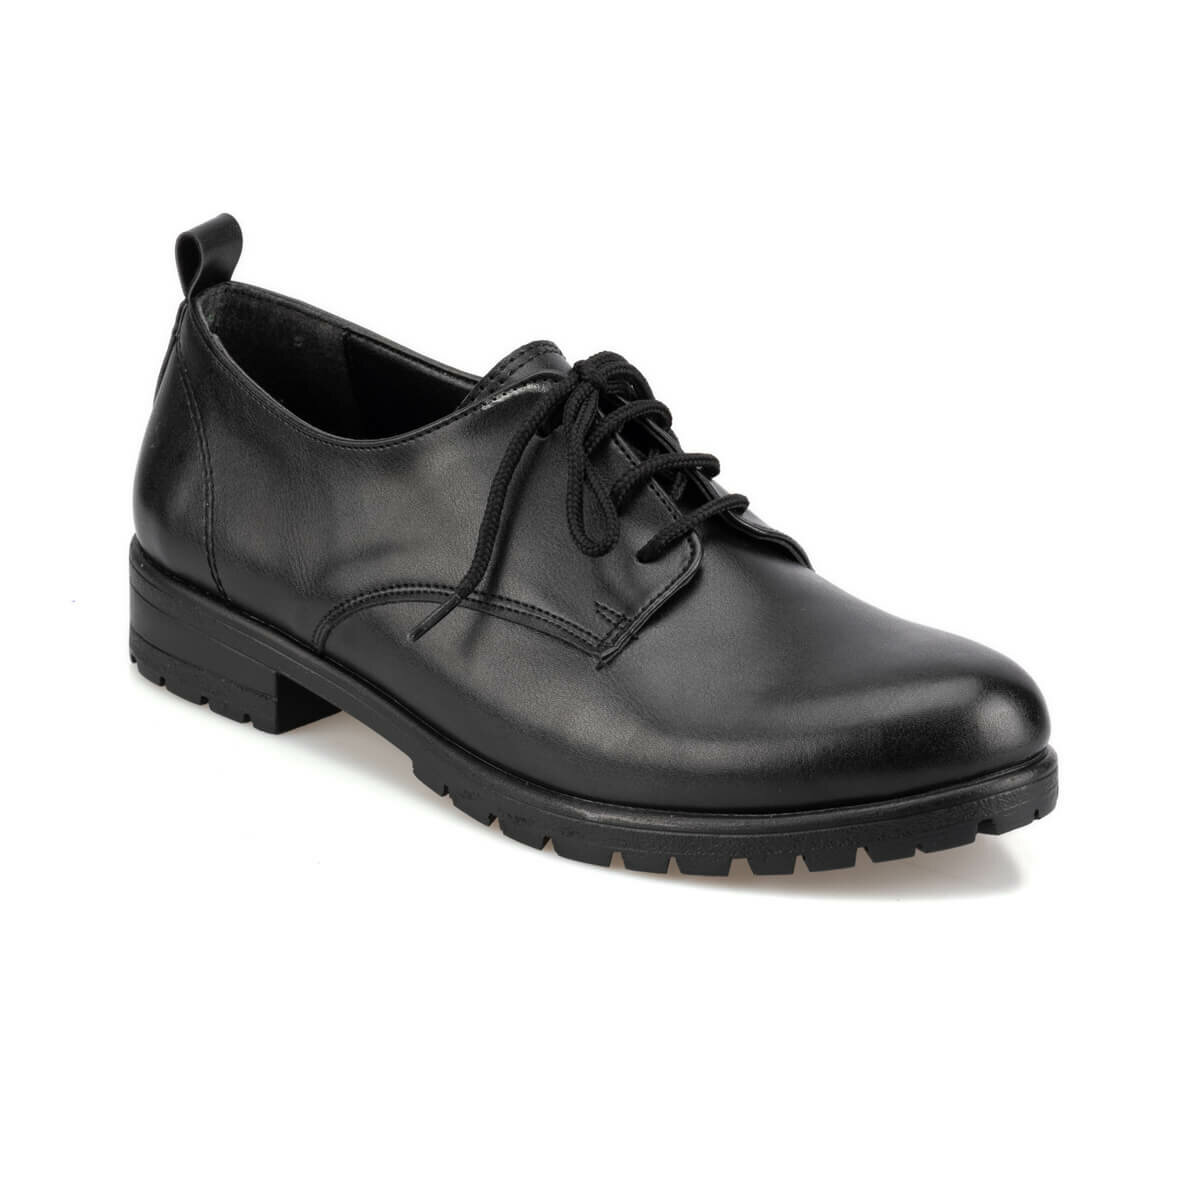 FLO 92. 314831.Z Black Women Oxford Shoes Polaris